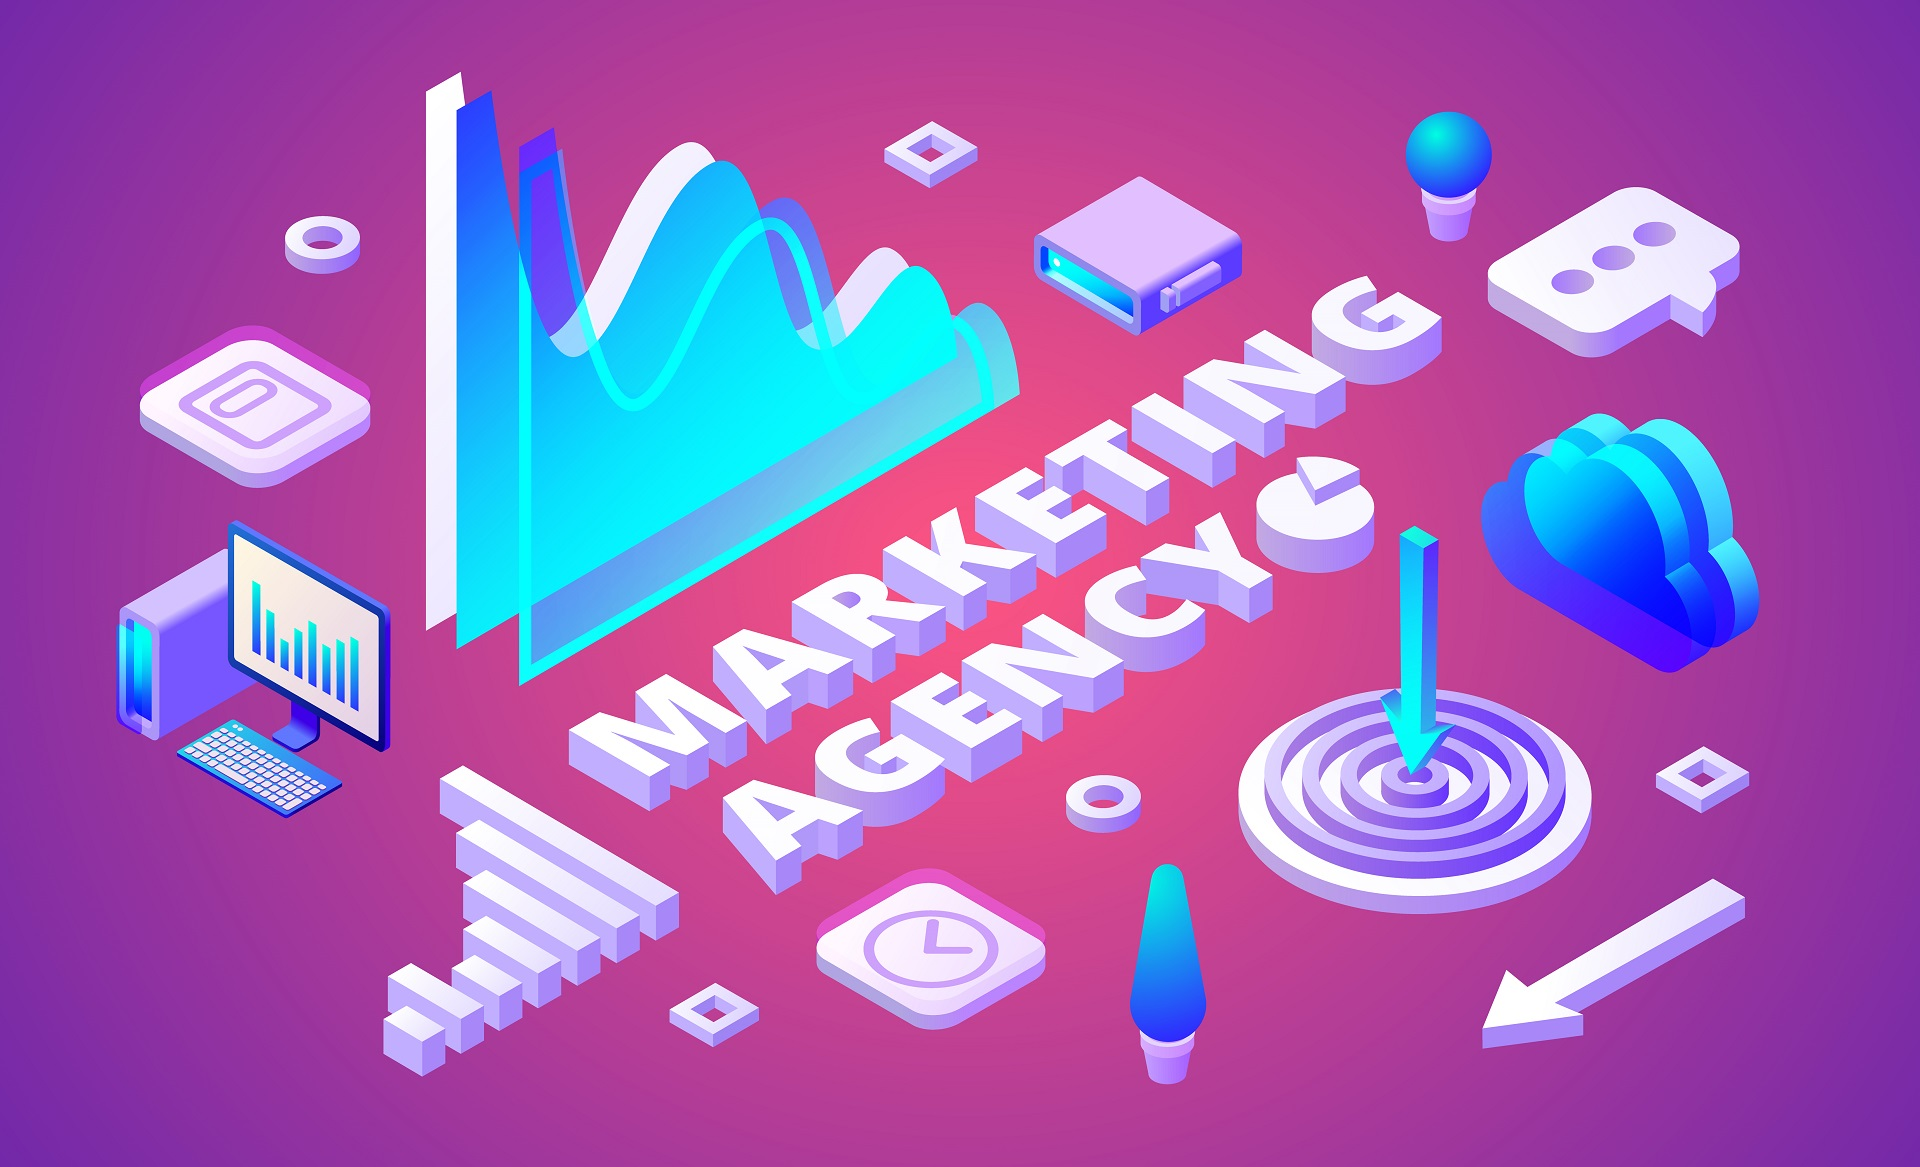 Marketing agency isometric